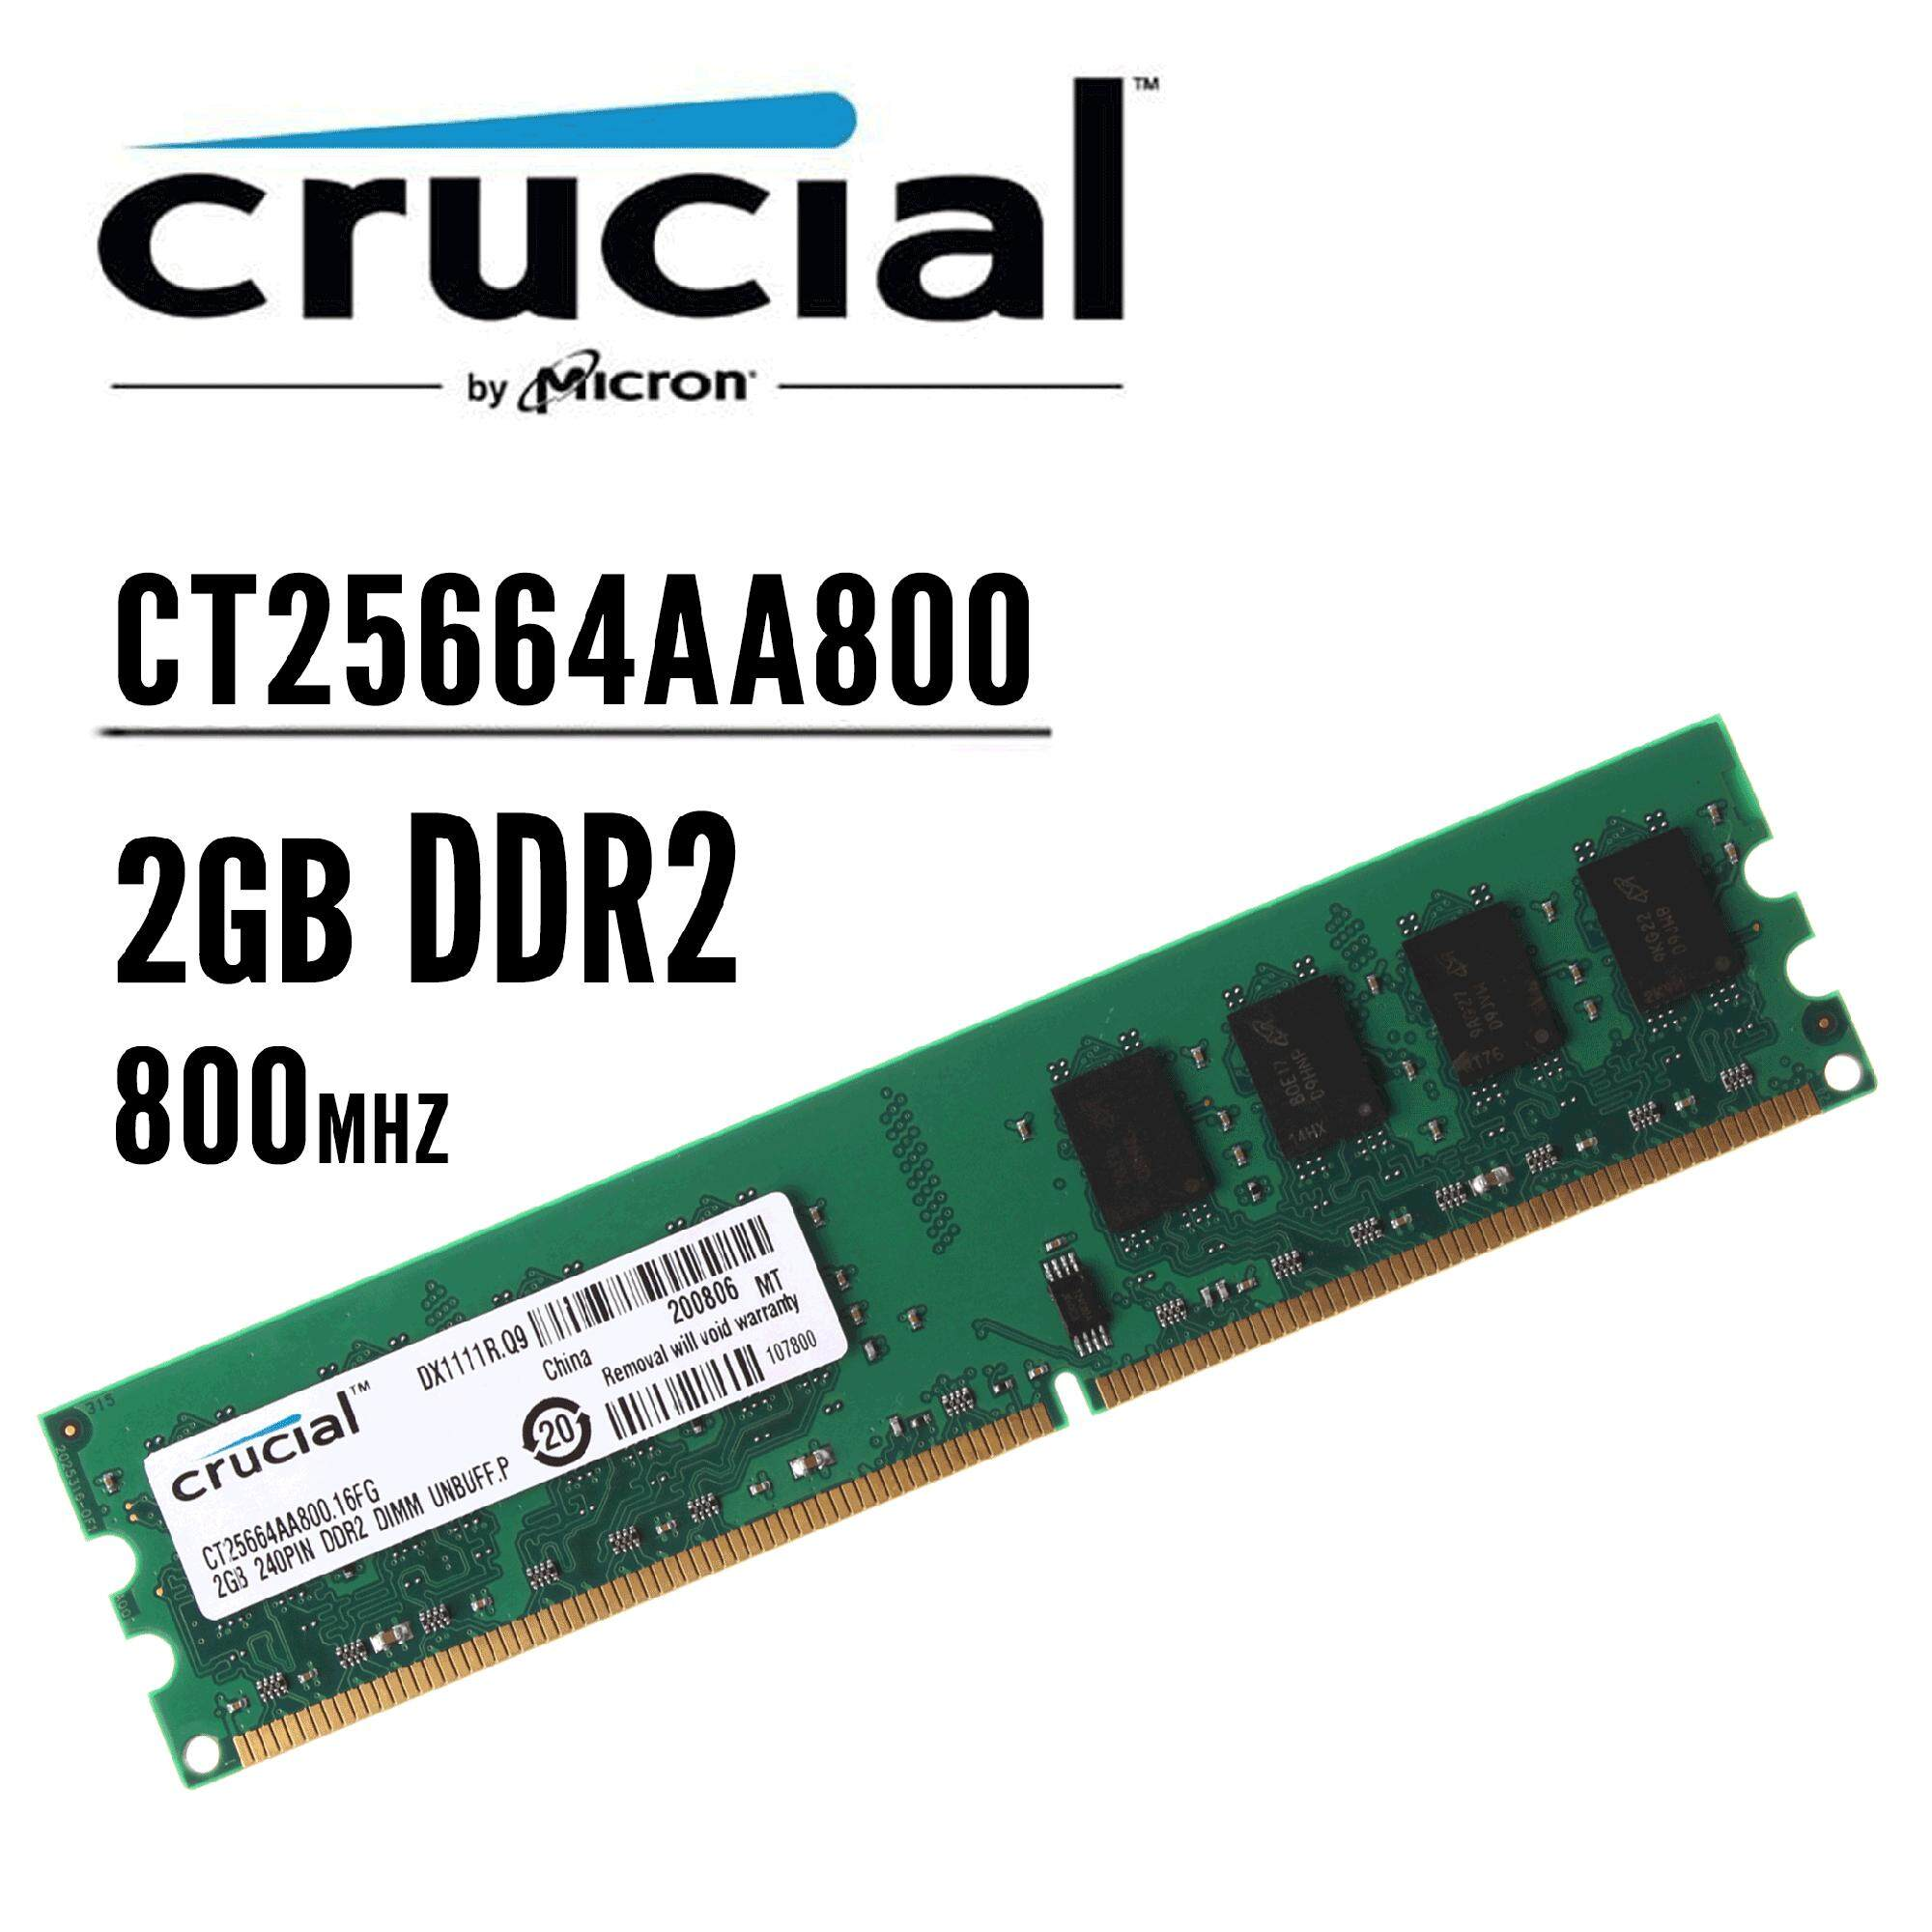 Ram Memory Memori Pc Ddr2 2gb Kingston 6400 800 Pc2 Ct25664aa800 Crucial Desktop